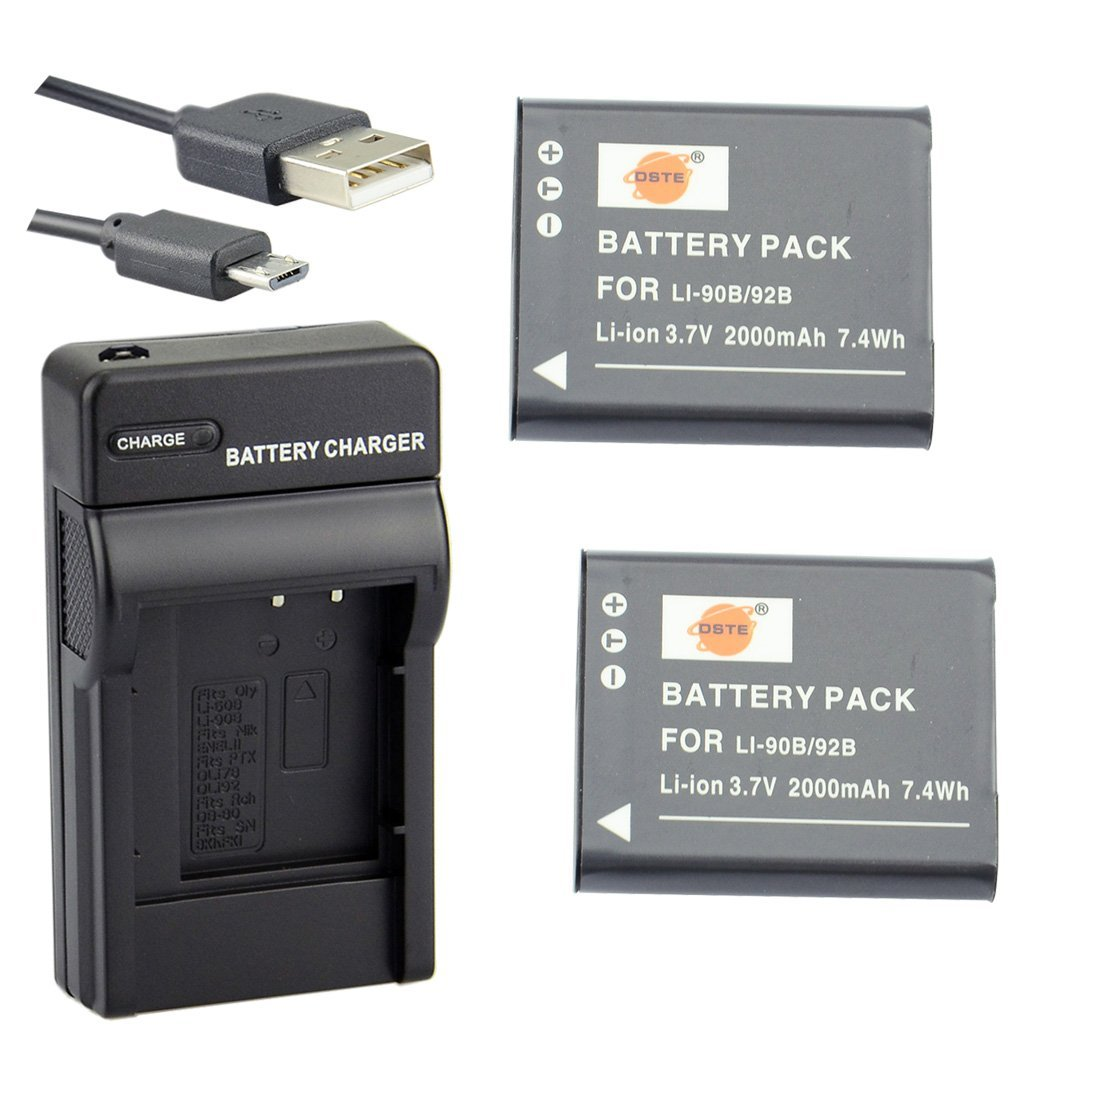 DSTE Li-90B Li-ion Battery (2-Pack) and Micro USB Charger Suit for Olympus Tough TG-1 TG-2 TG-3 SH-1 SH-50 SH-60 SP-100 XZ-2 iHS